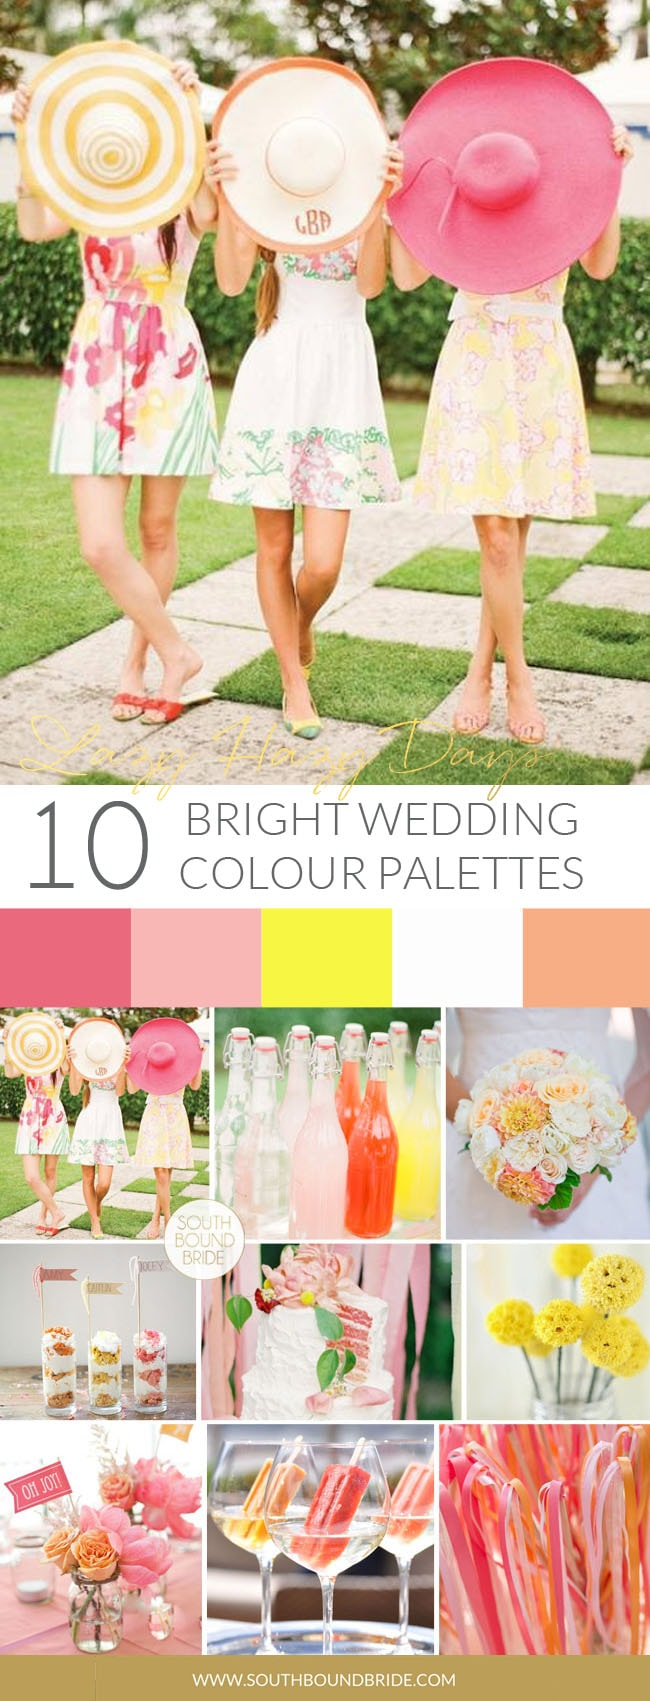 Summer Garden Party Wedding Inspiration Board | SouthBound Bride